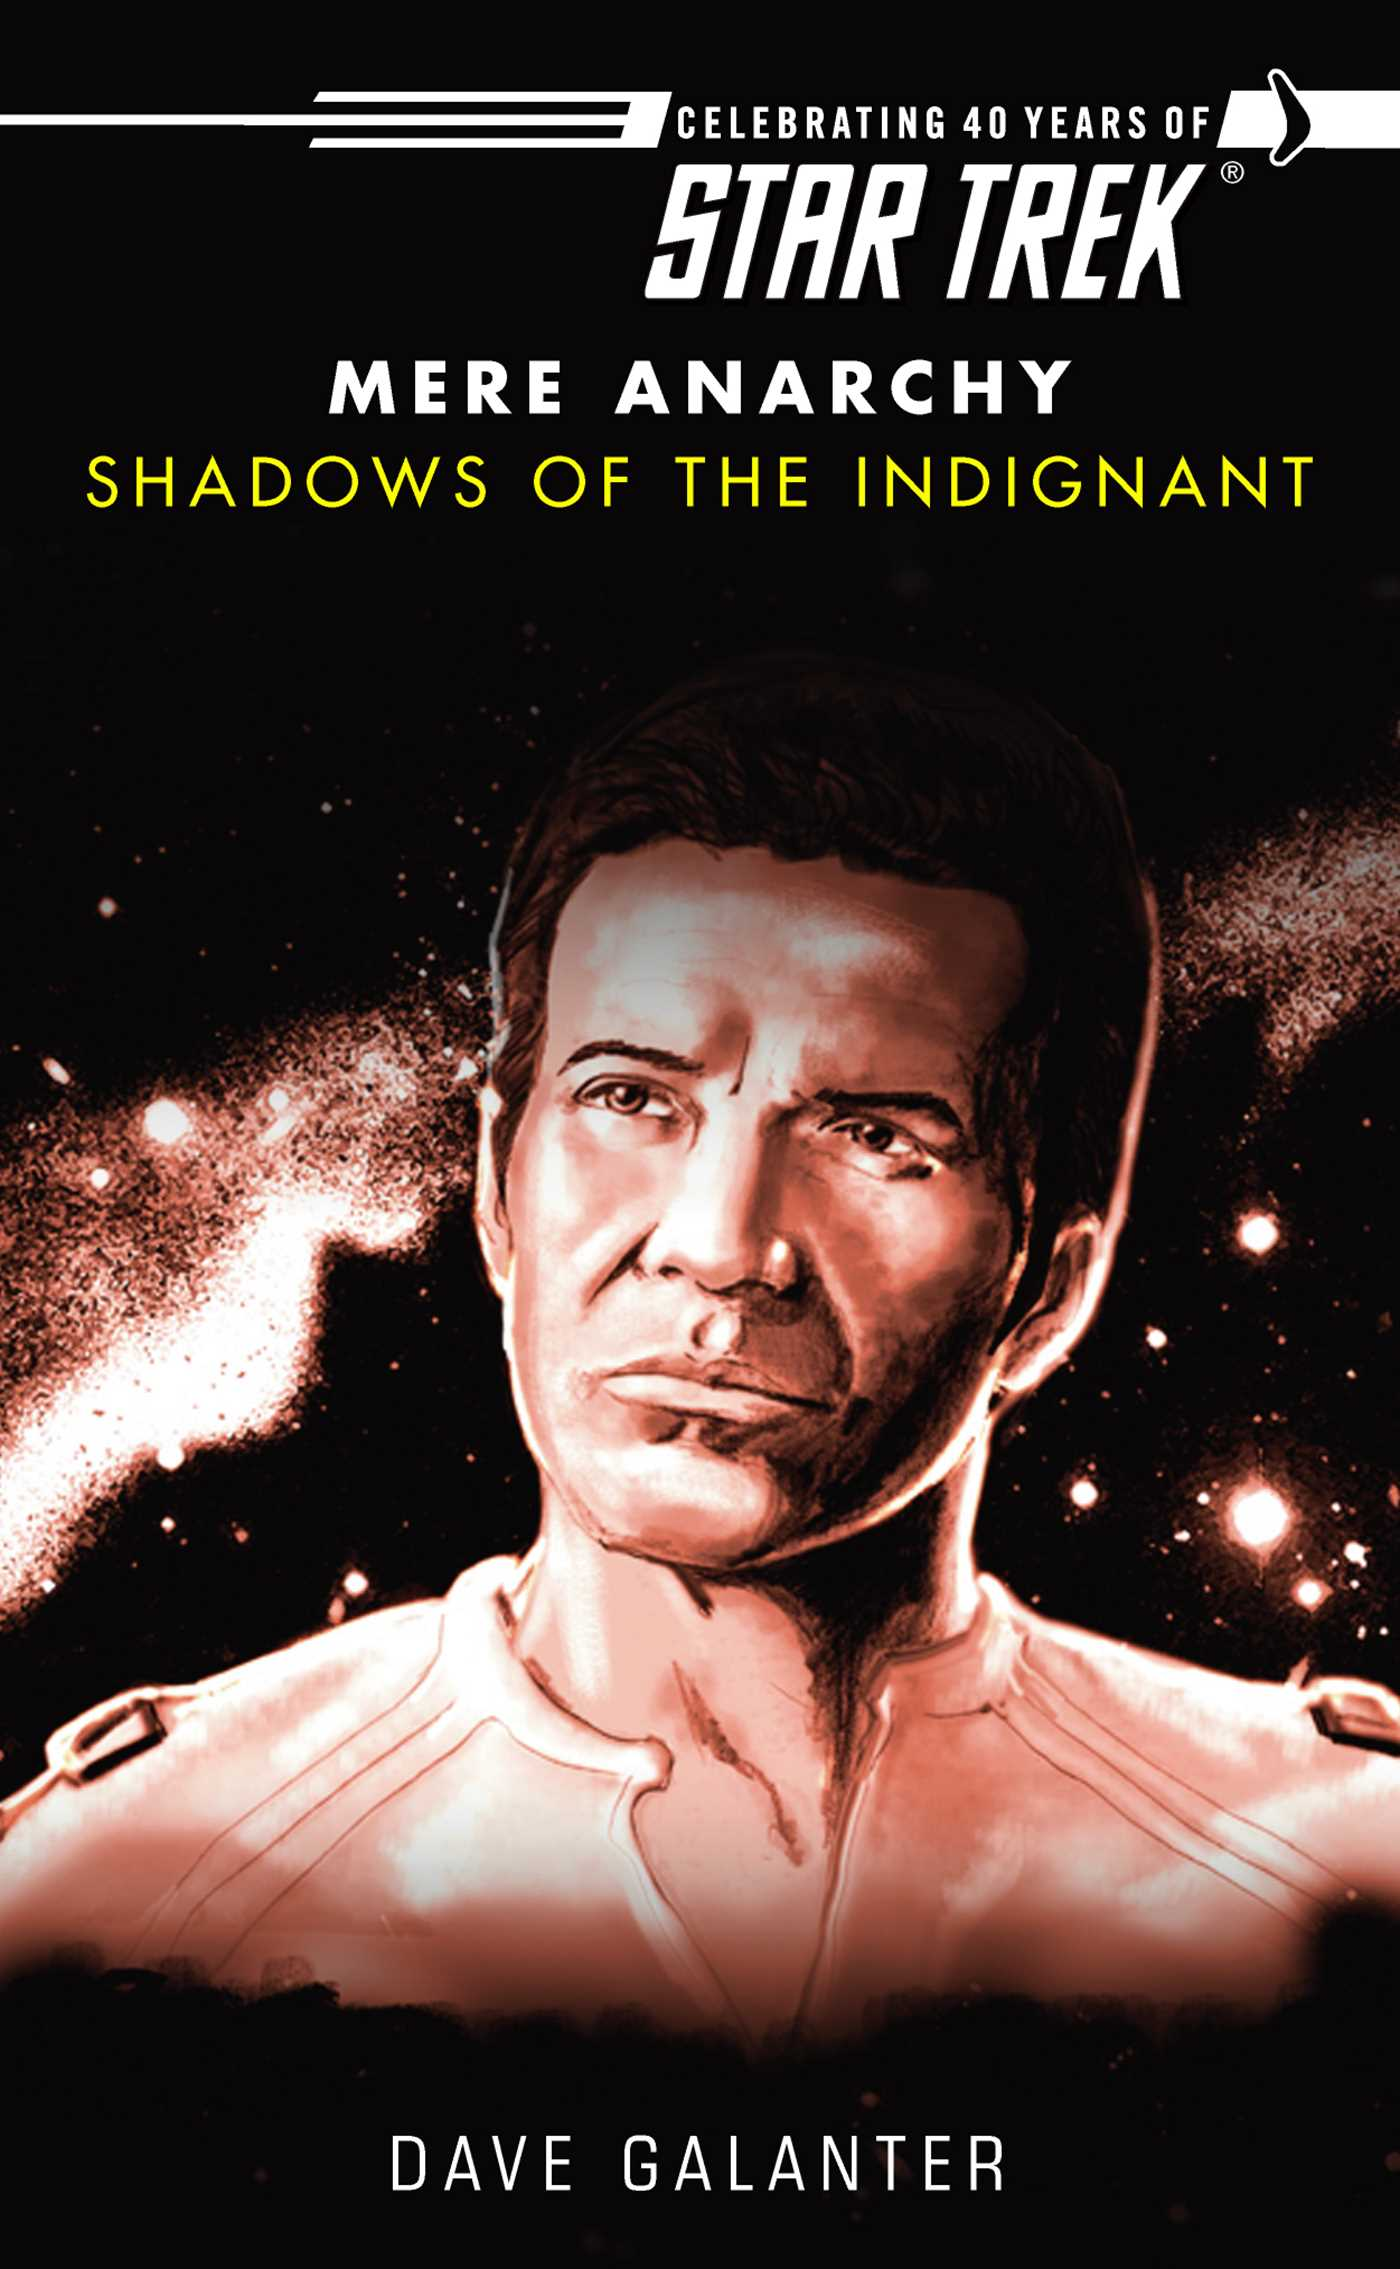 Star trek shadows of the indignant 9781416534532 hr